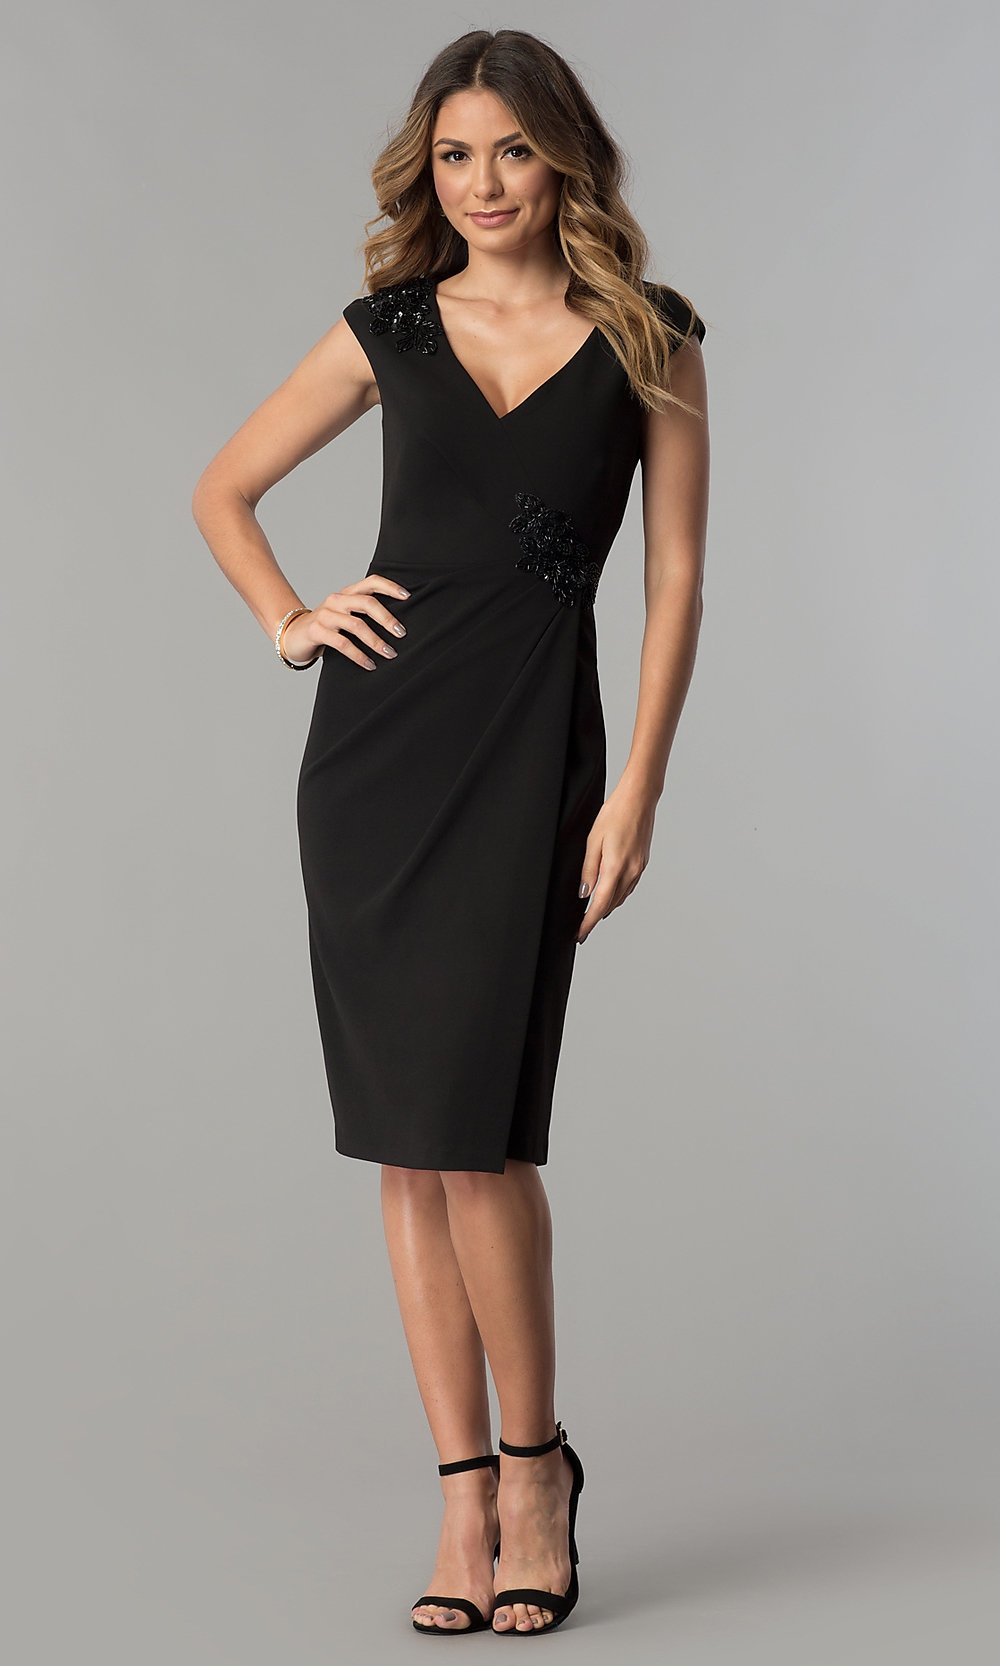 black short cocktail party dress with sequins